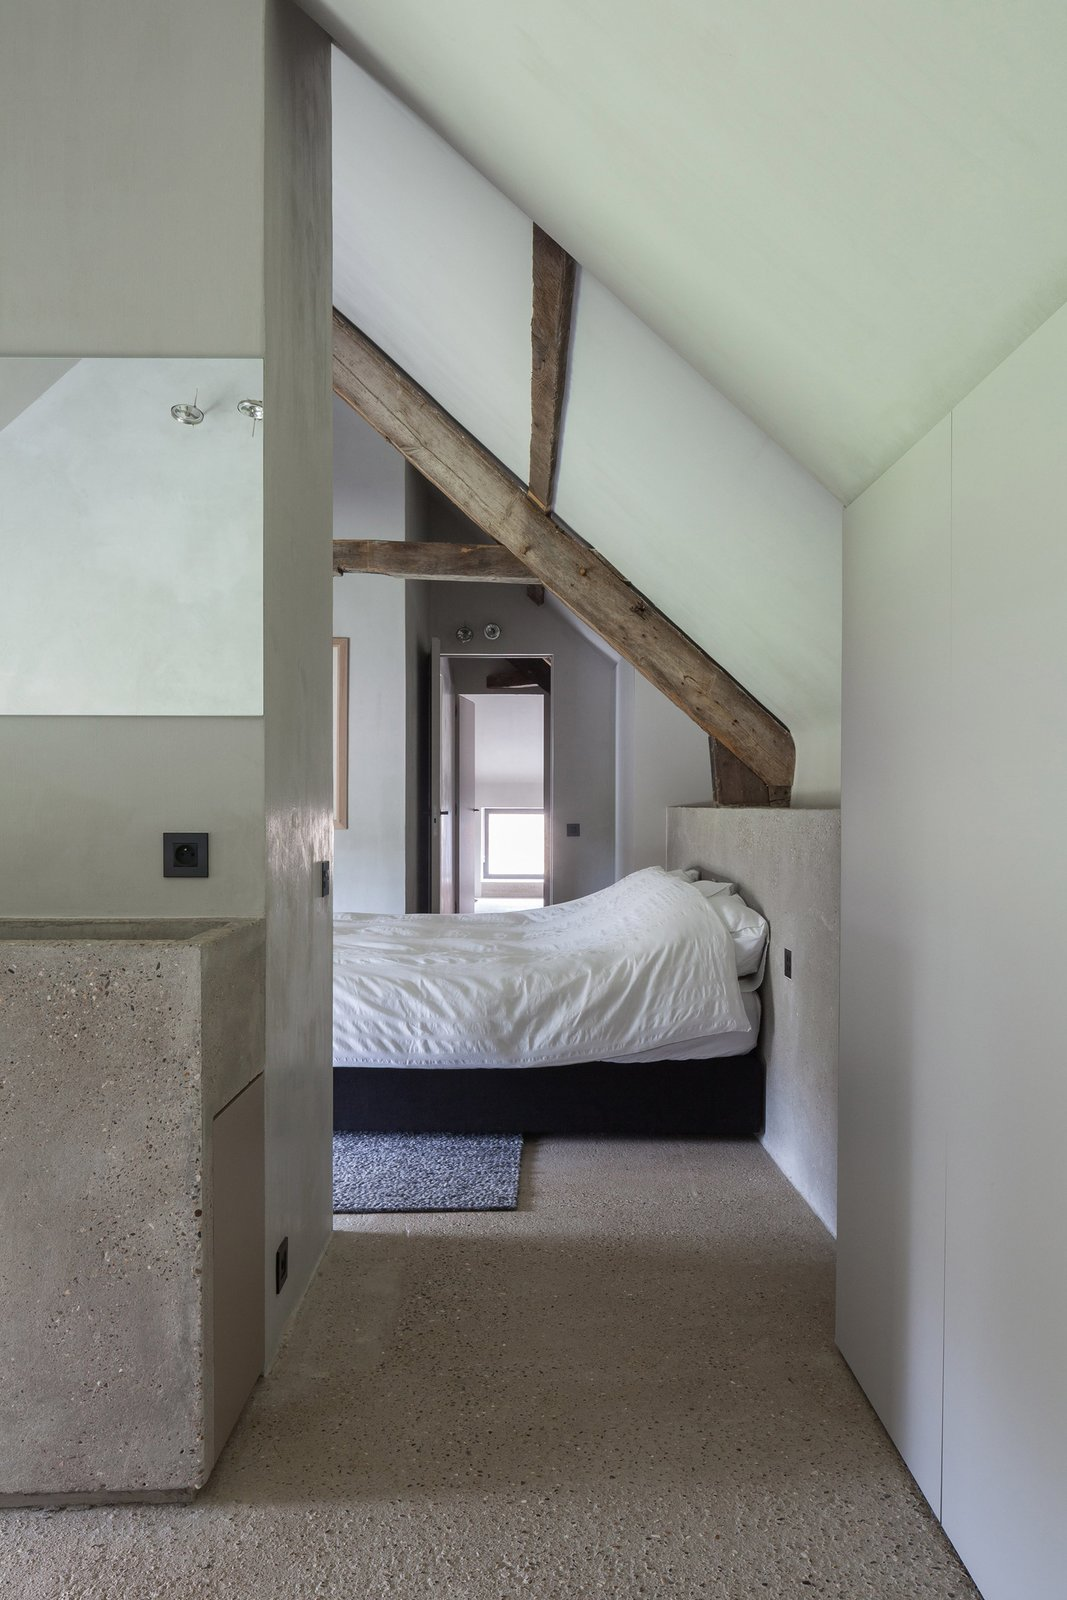 Guest Room by LS from Farmhouse Burkeldijk